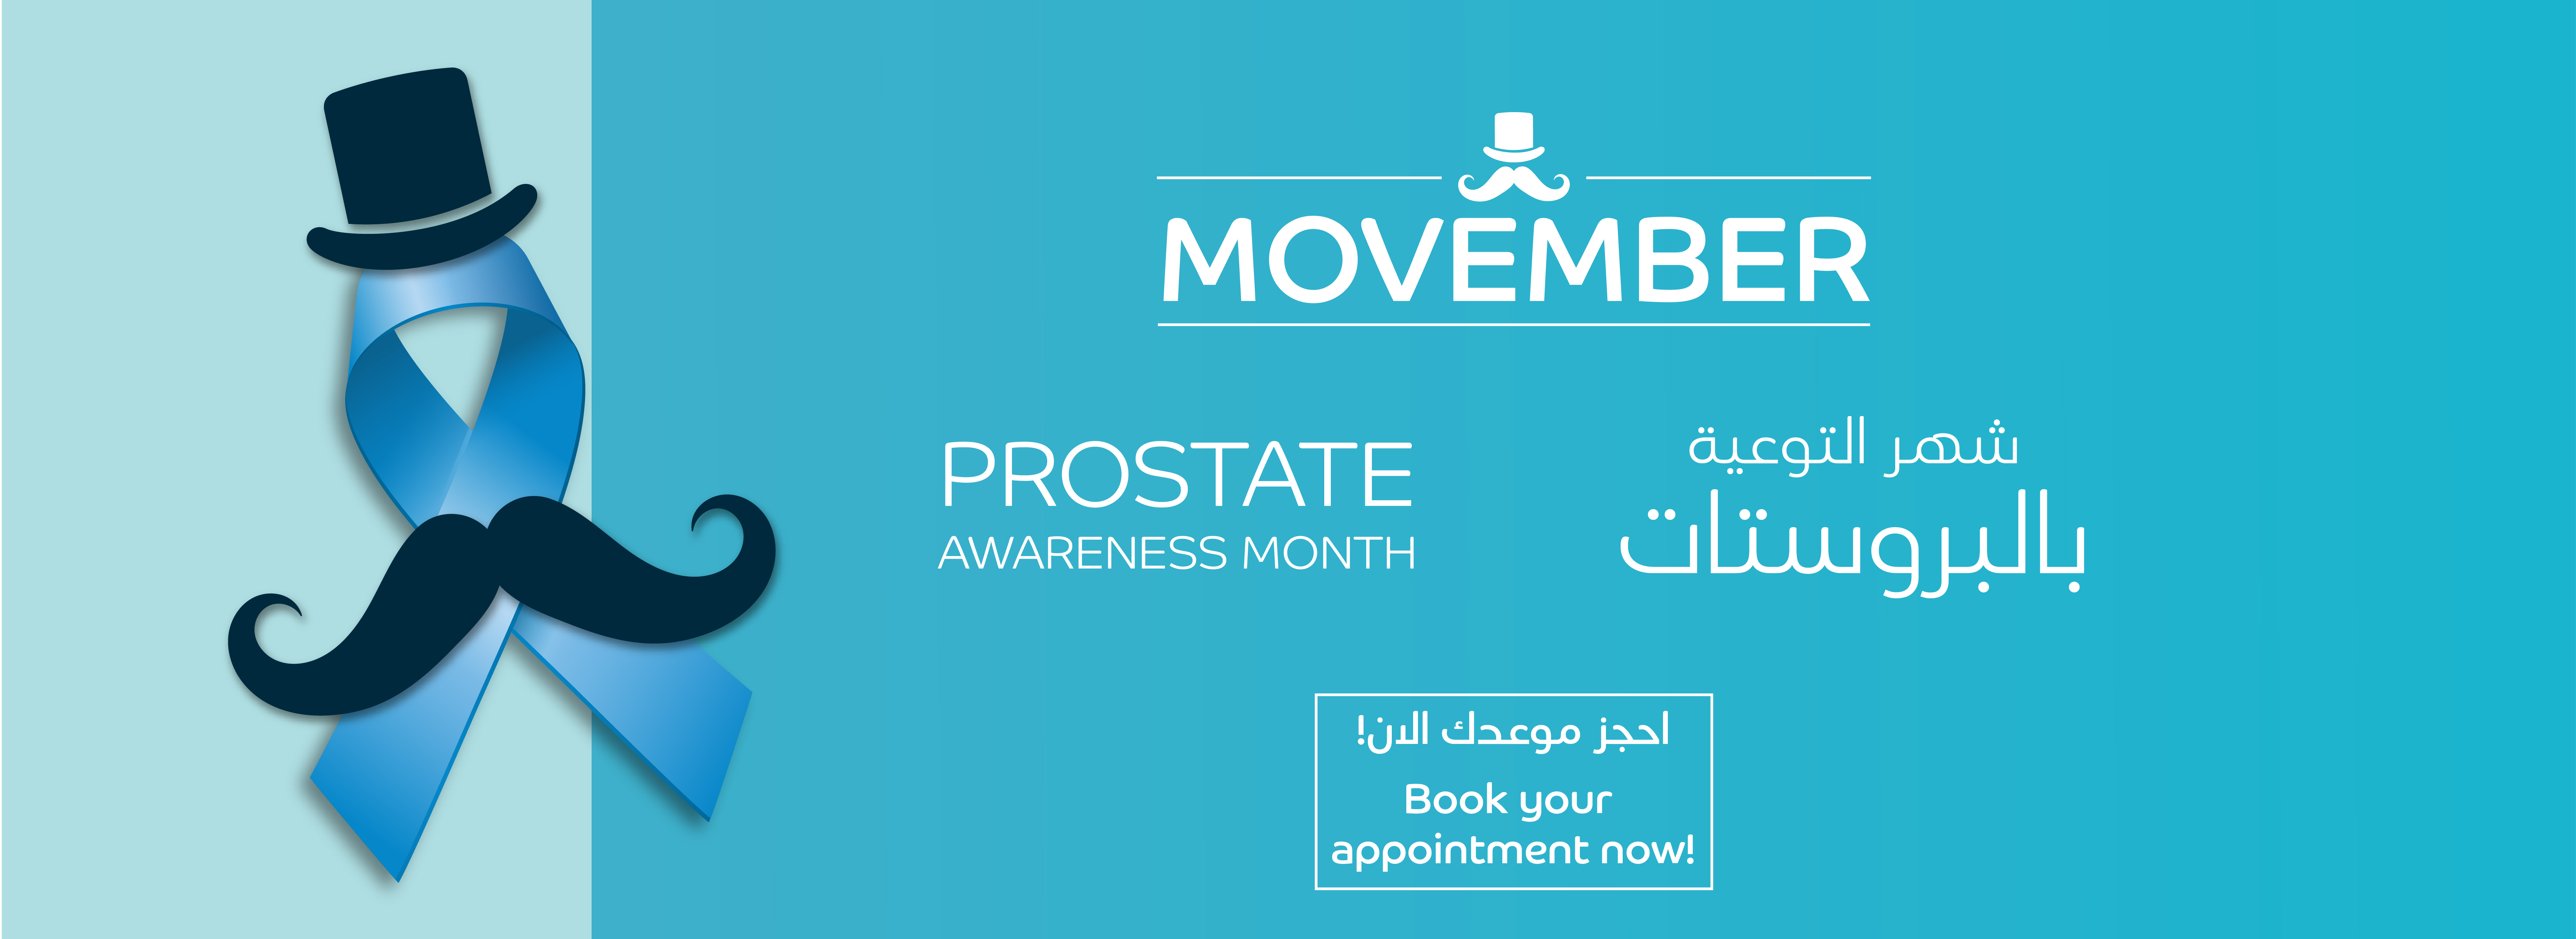 Prostate Awareness